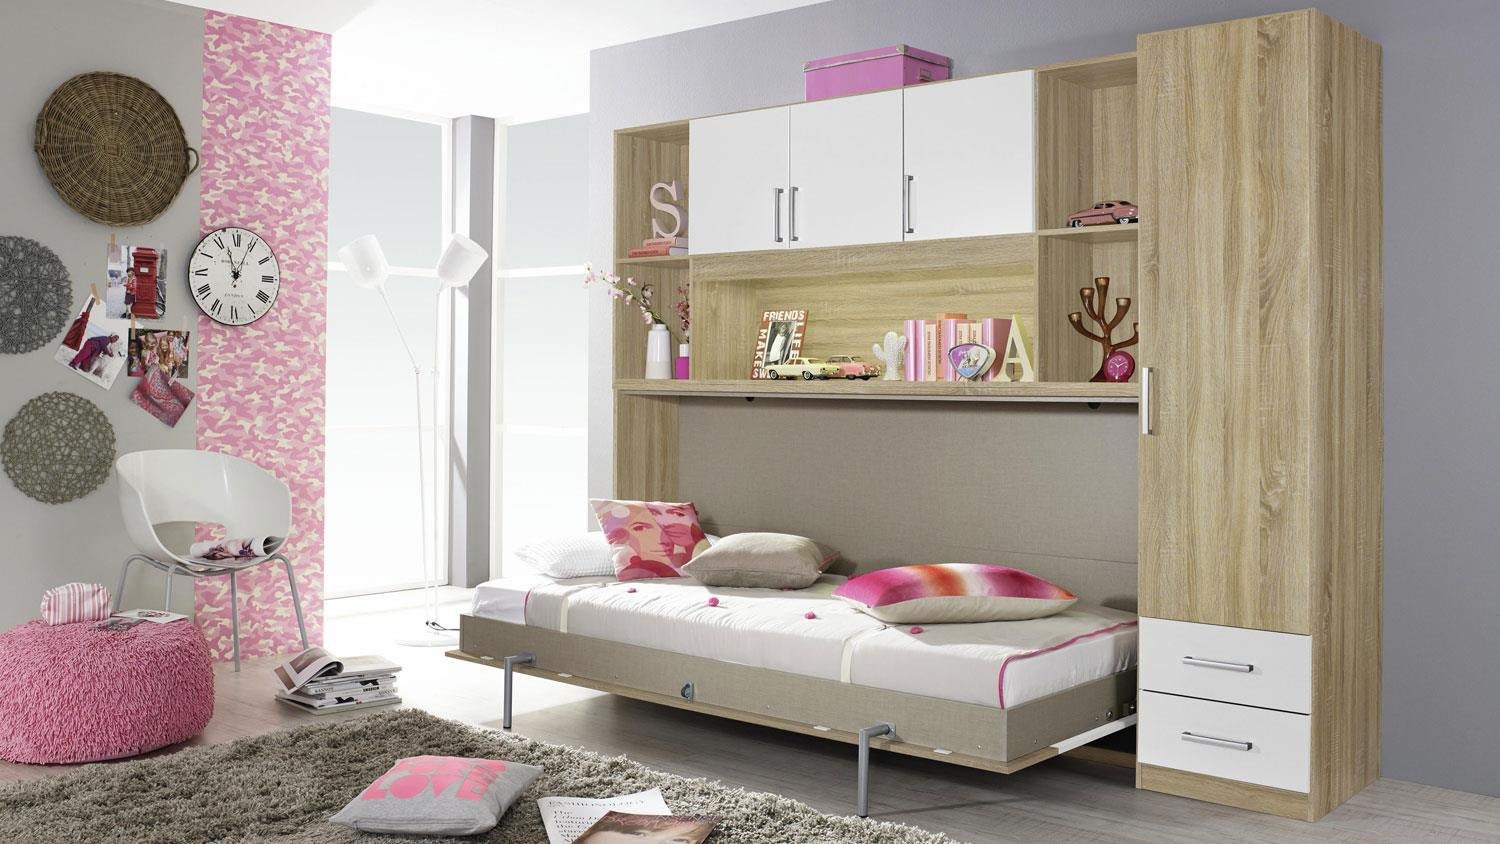 schrankbett albero regal kleiderschrank bett berbau eiche sonoma wei. Black Bedroom Furniture Sets. Home Design Ideas